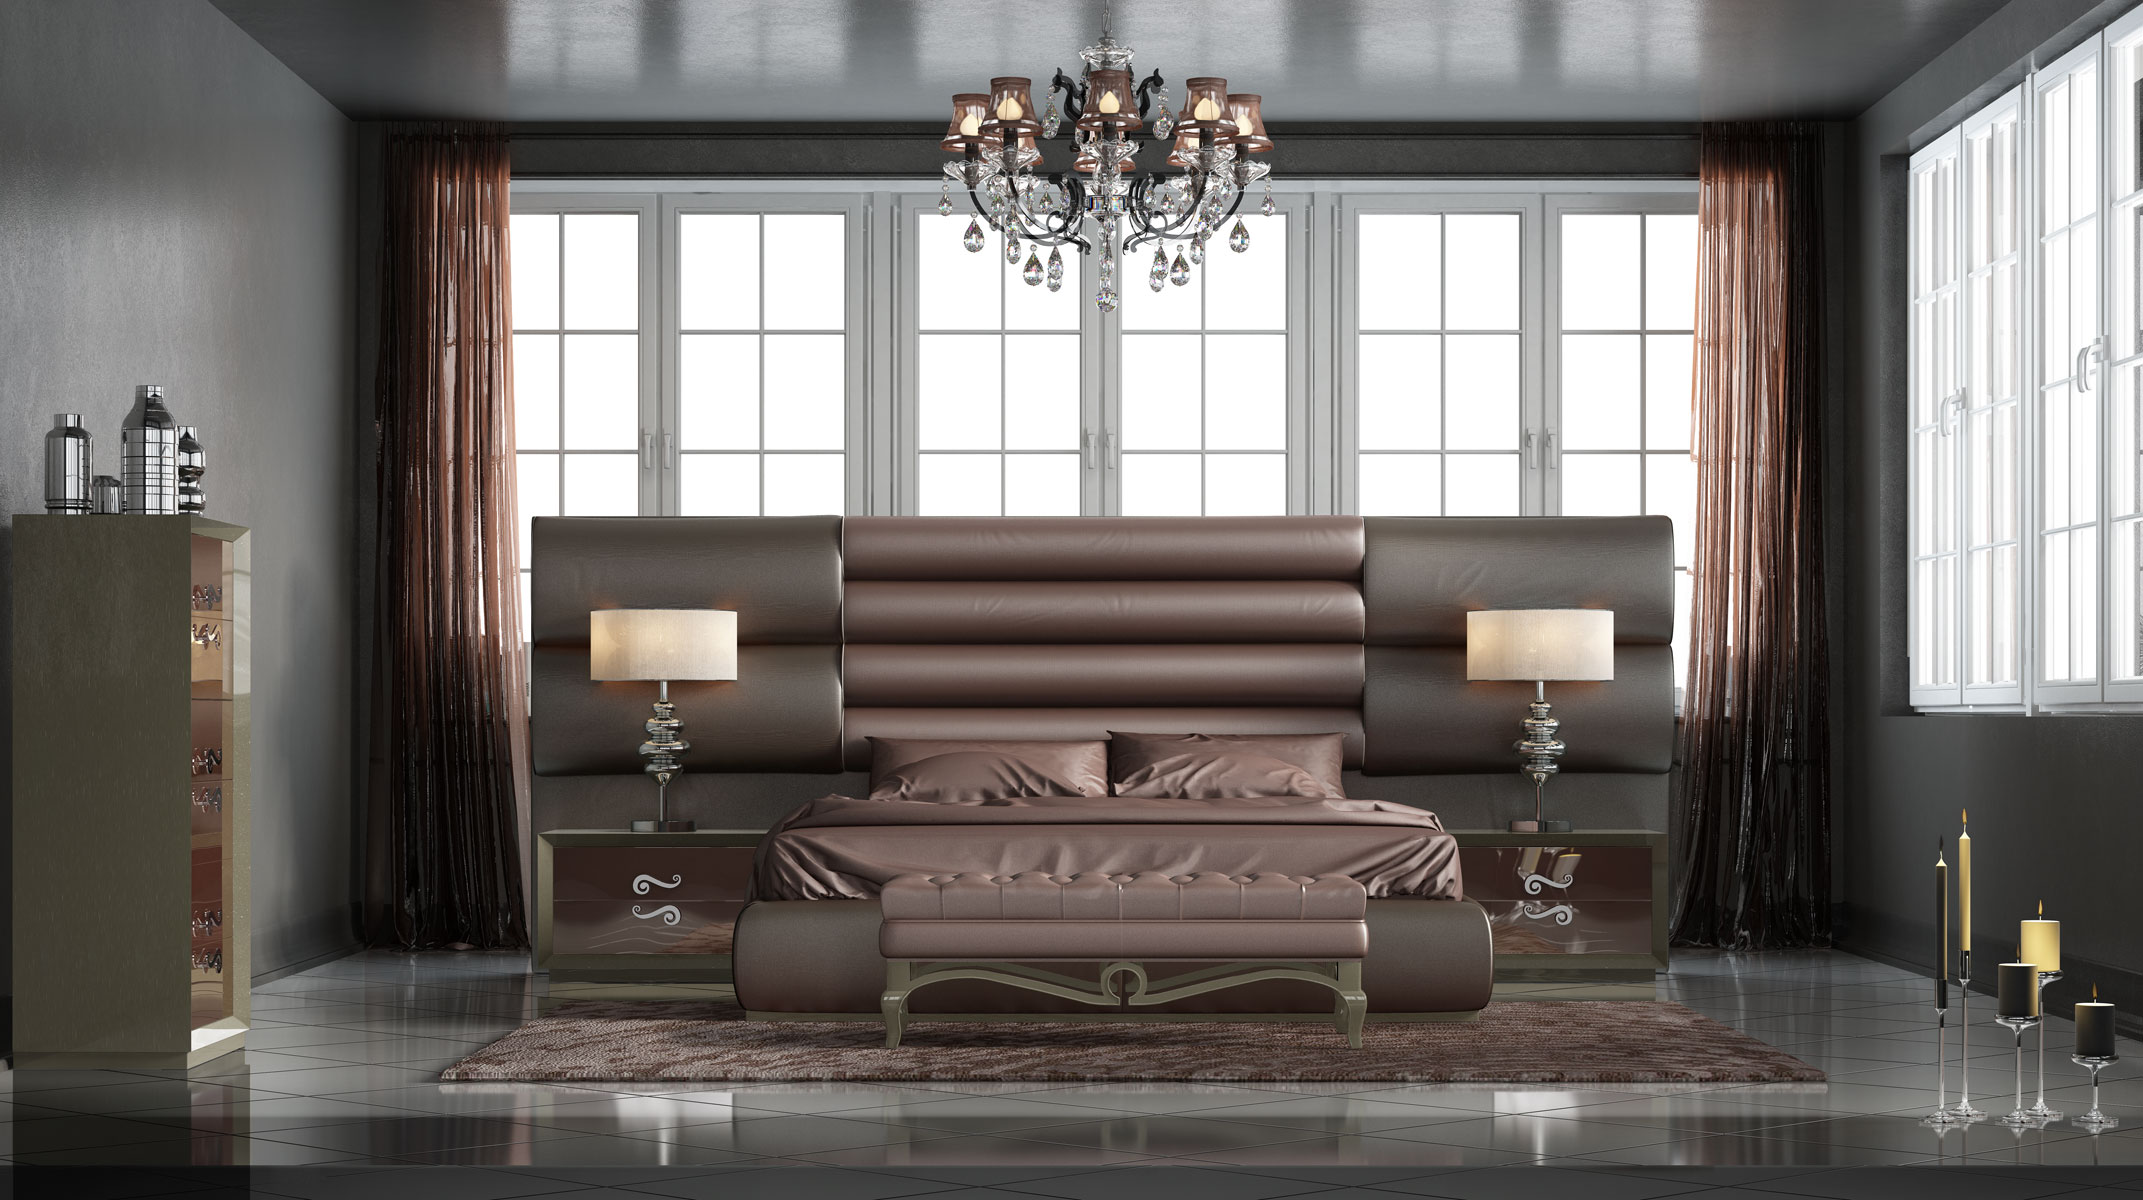 Refined Wood High End Modern Furniture Feat Full Tufted